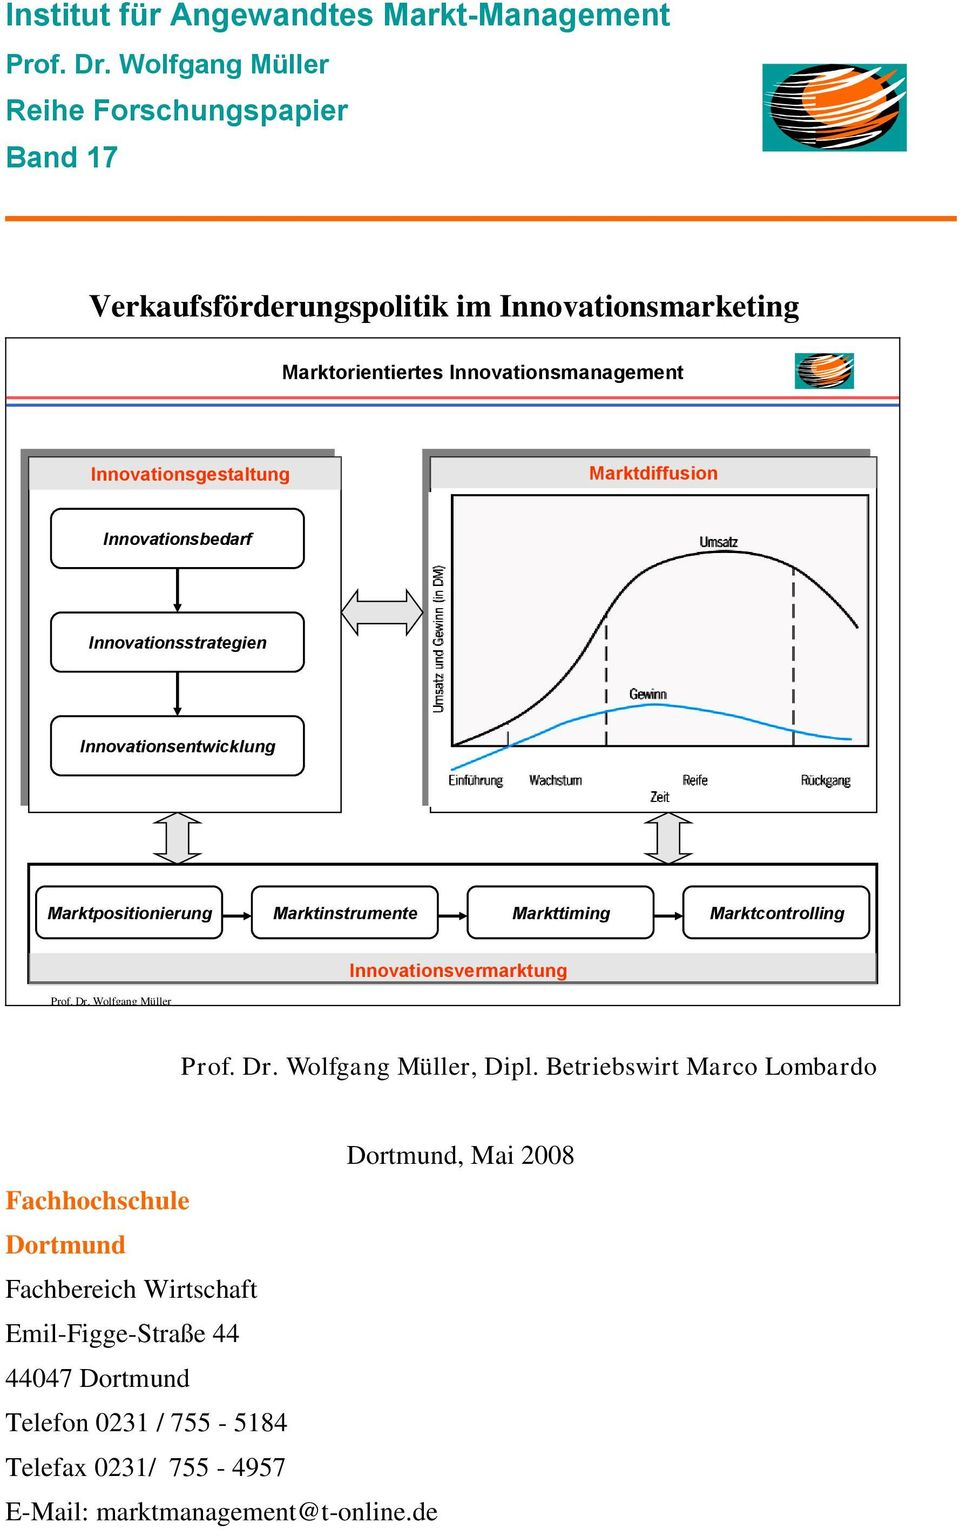 Marktdiffusion Innovationsbedarf Innovationsstrategien Innovationsentwicklung Marktpositionierung Marktinstrumente Markttiming Marktcontrolling Prof. Dr.